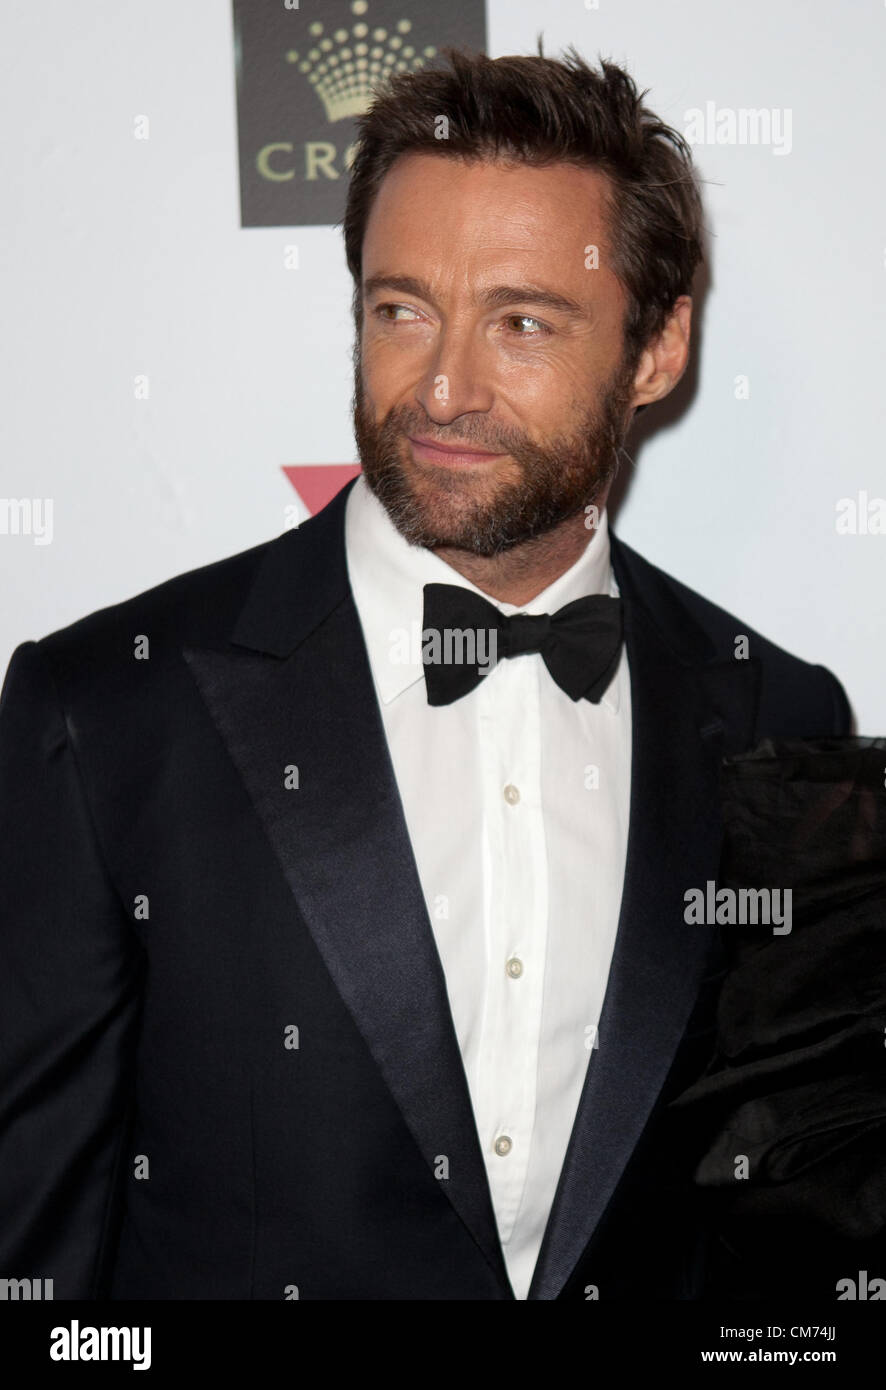 Hugh Jackman at the Fight Cancer Foundation's 20th Annual Red Ball on October 20, 2012 in Melbourne, Australia. - Stock Image